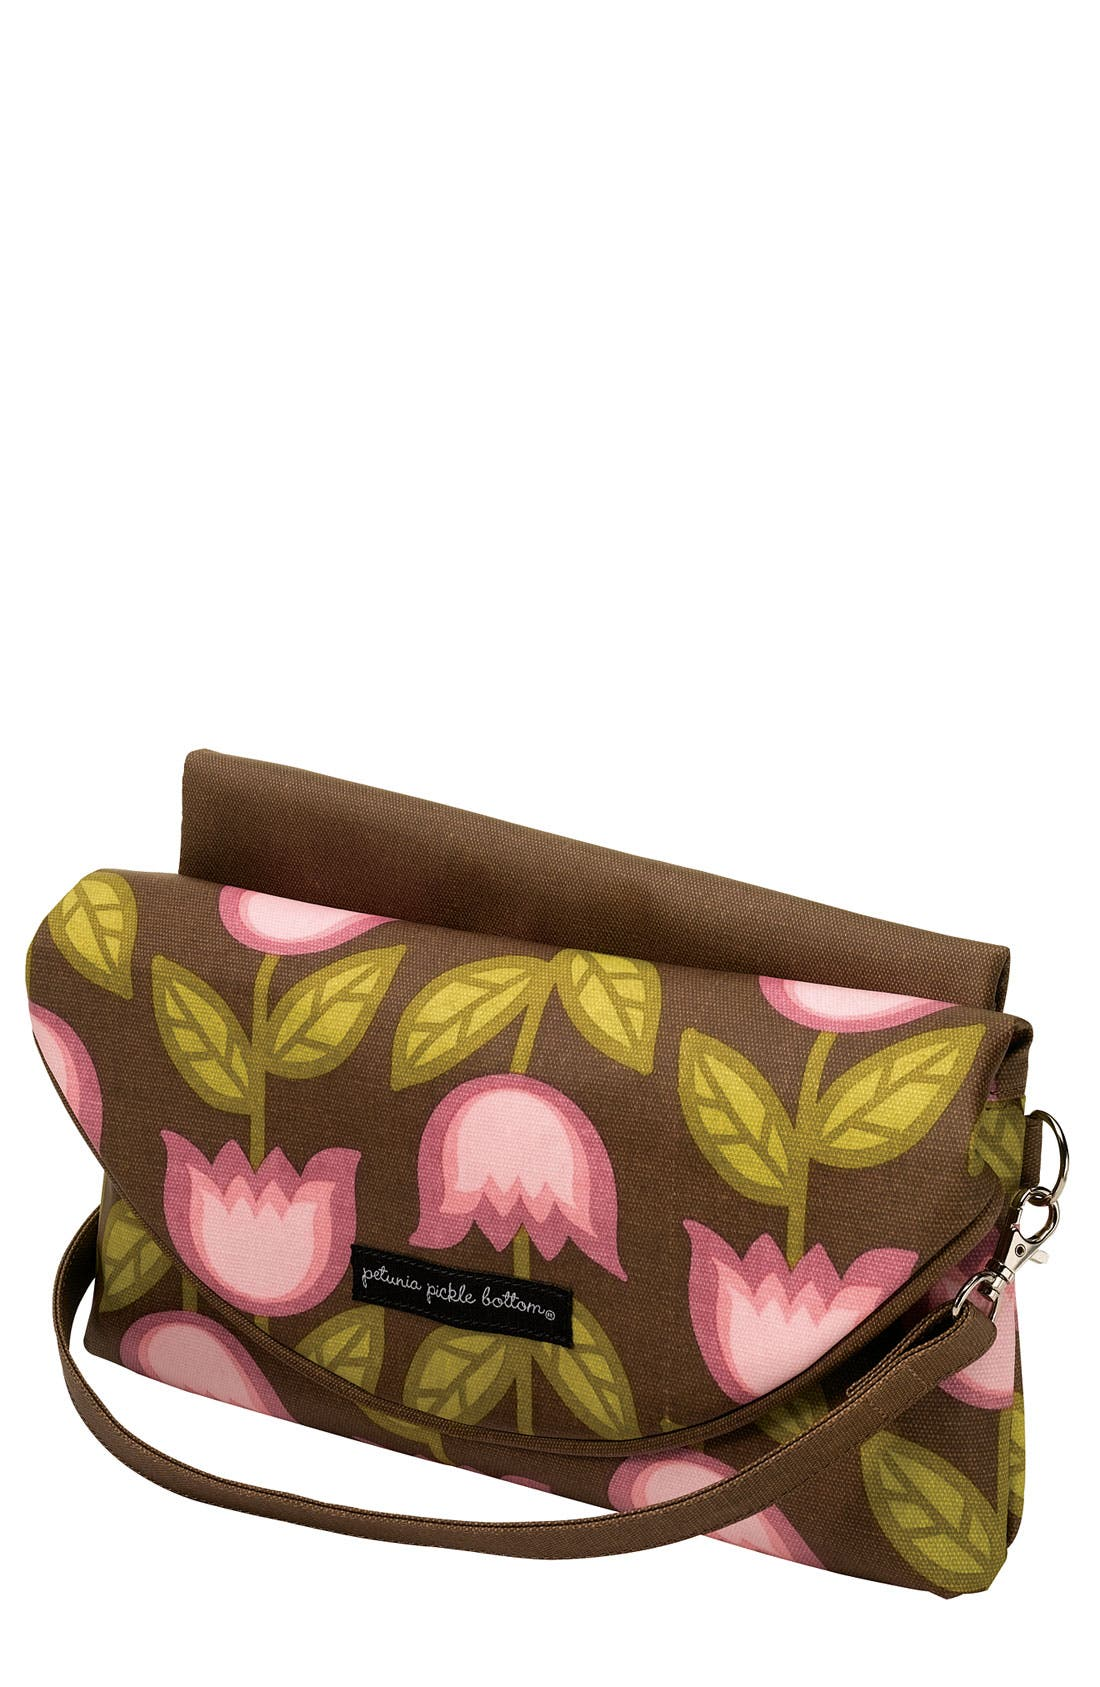 Main Image - Petunia Pickle Bottom Glazed 'Change It Up' Clutch